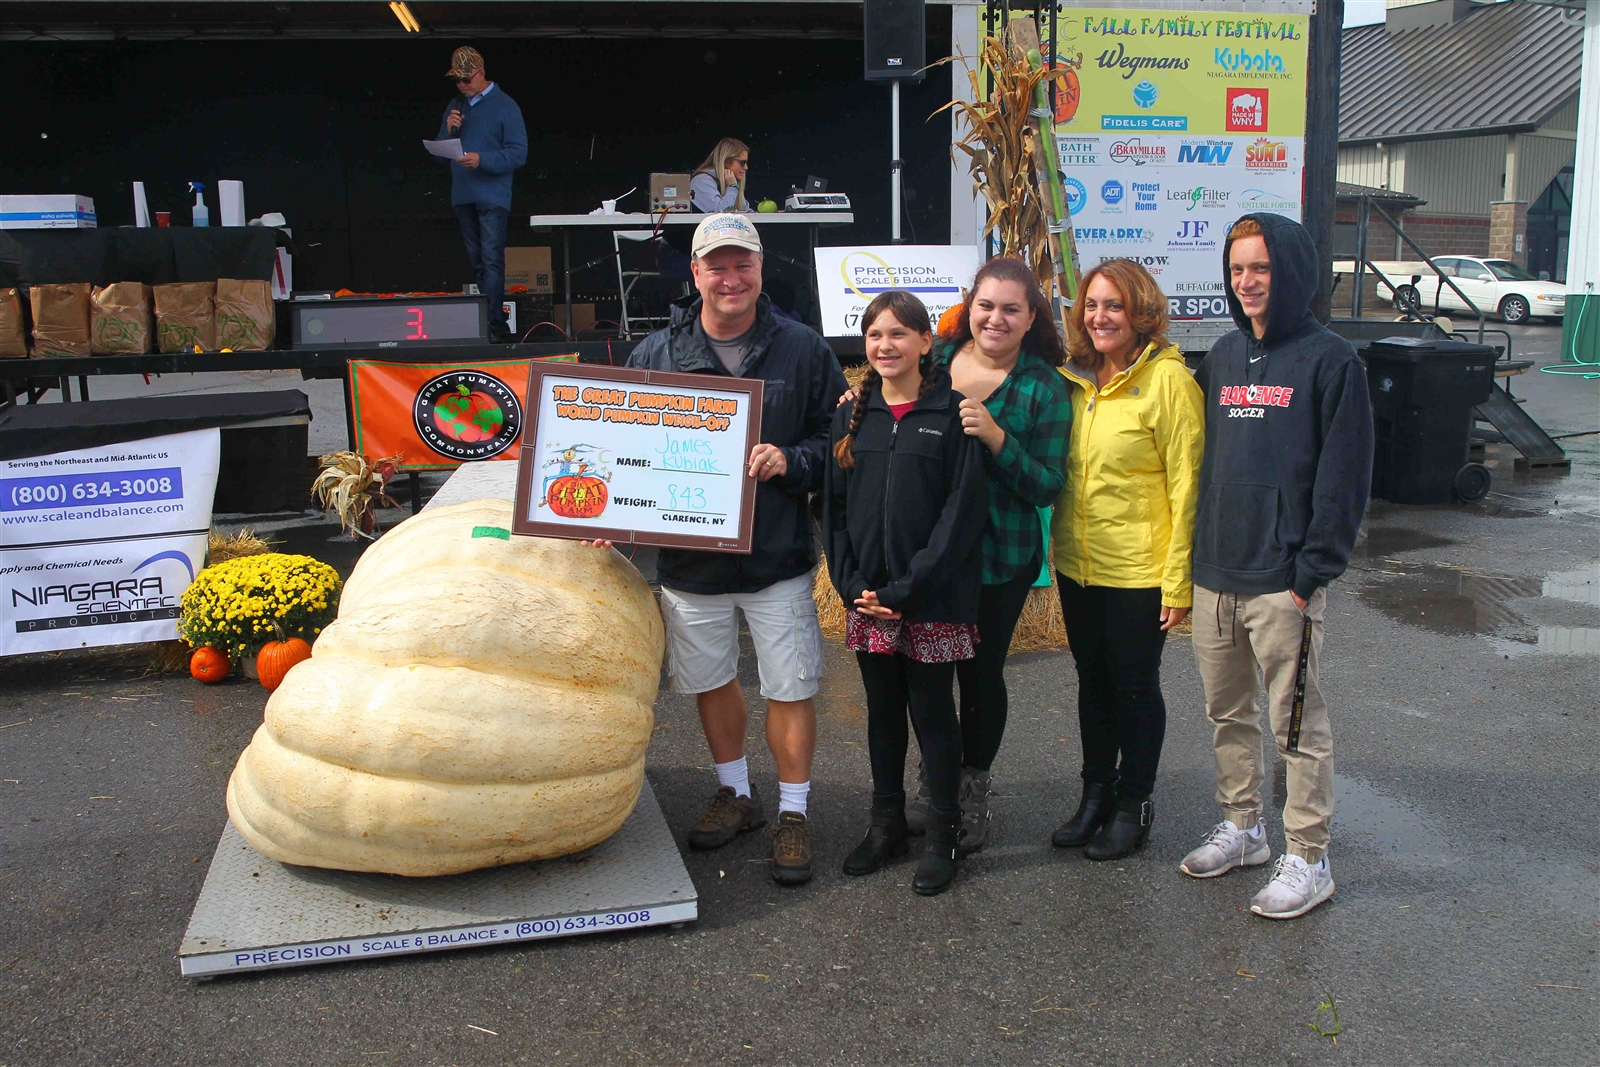 James Kubiak and his family u2014 Heather, Anna, wife Lynn, and Mitchell u2014 with a pumpkin he and his daughter grew to 843 pounds.